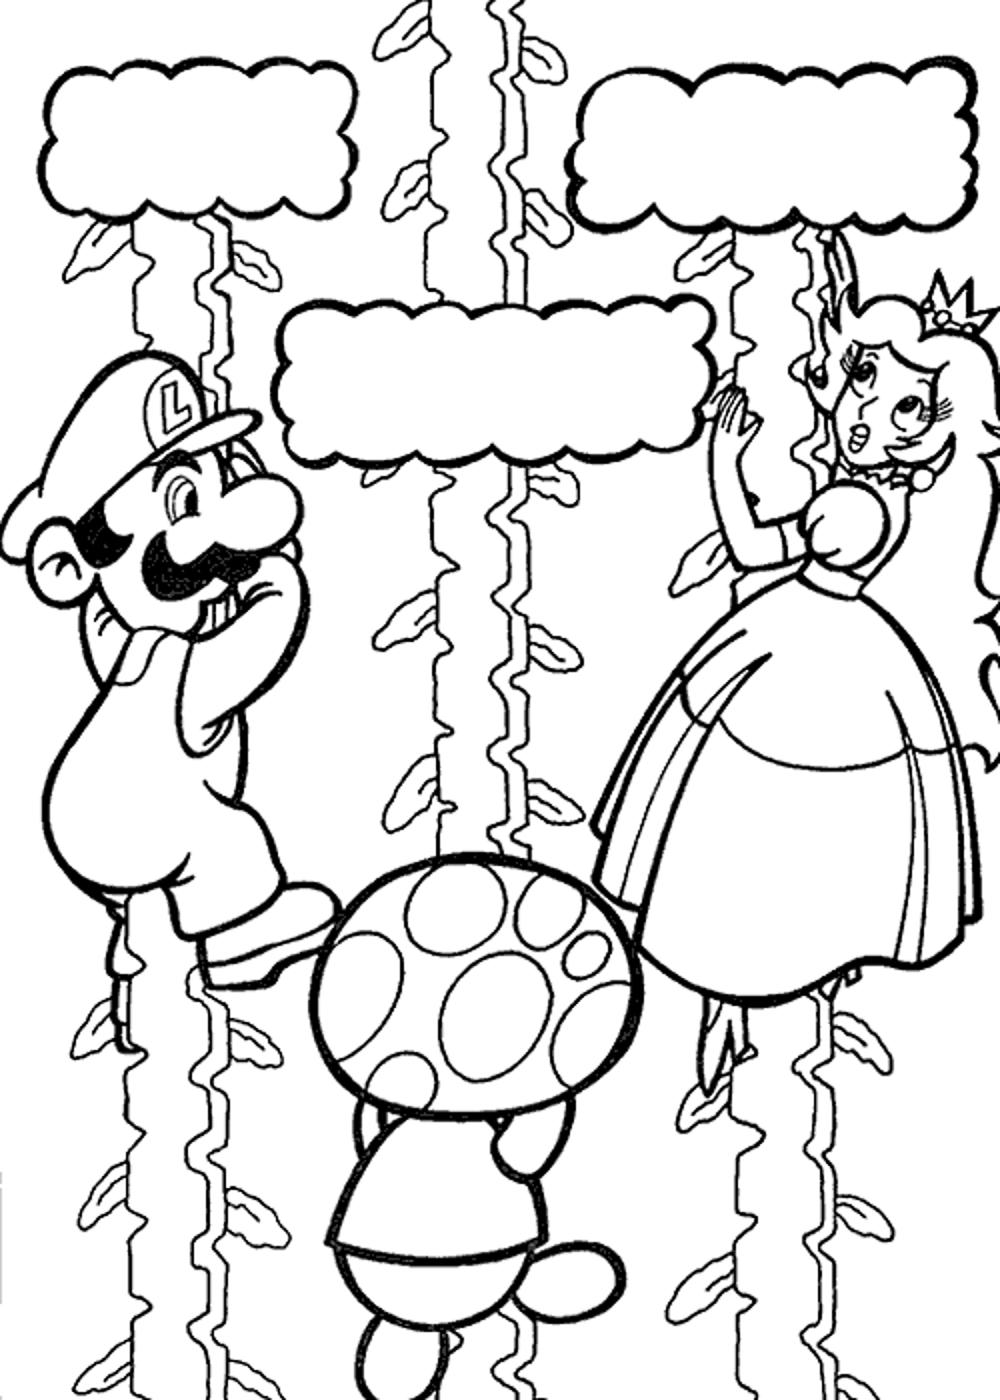 super mario galaxy coloring pages BestAppsForKidscom